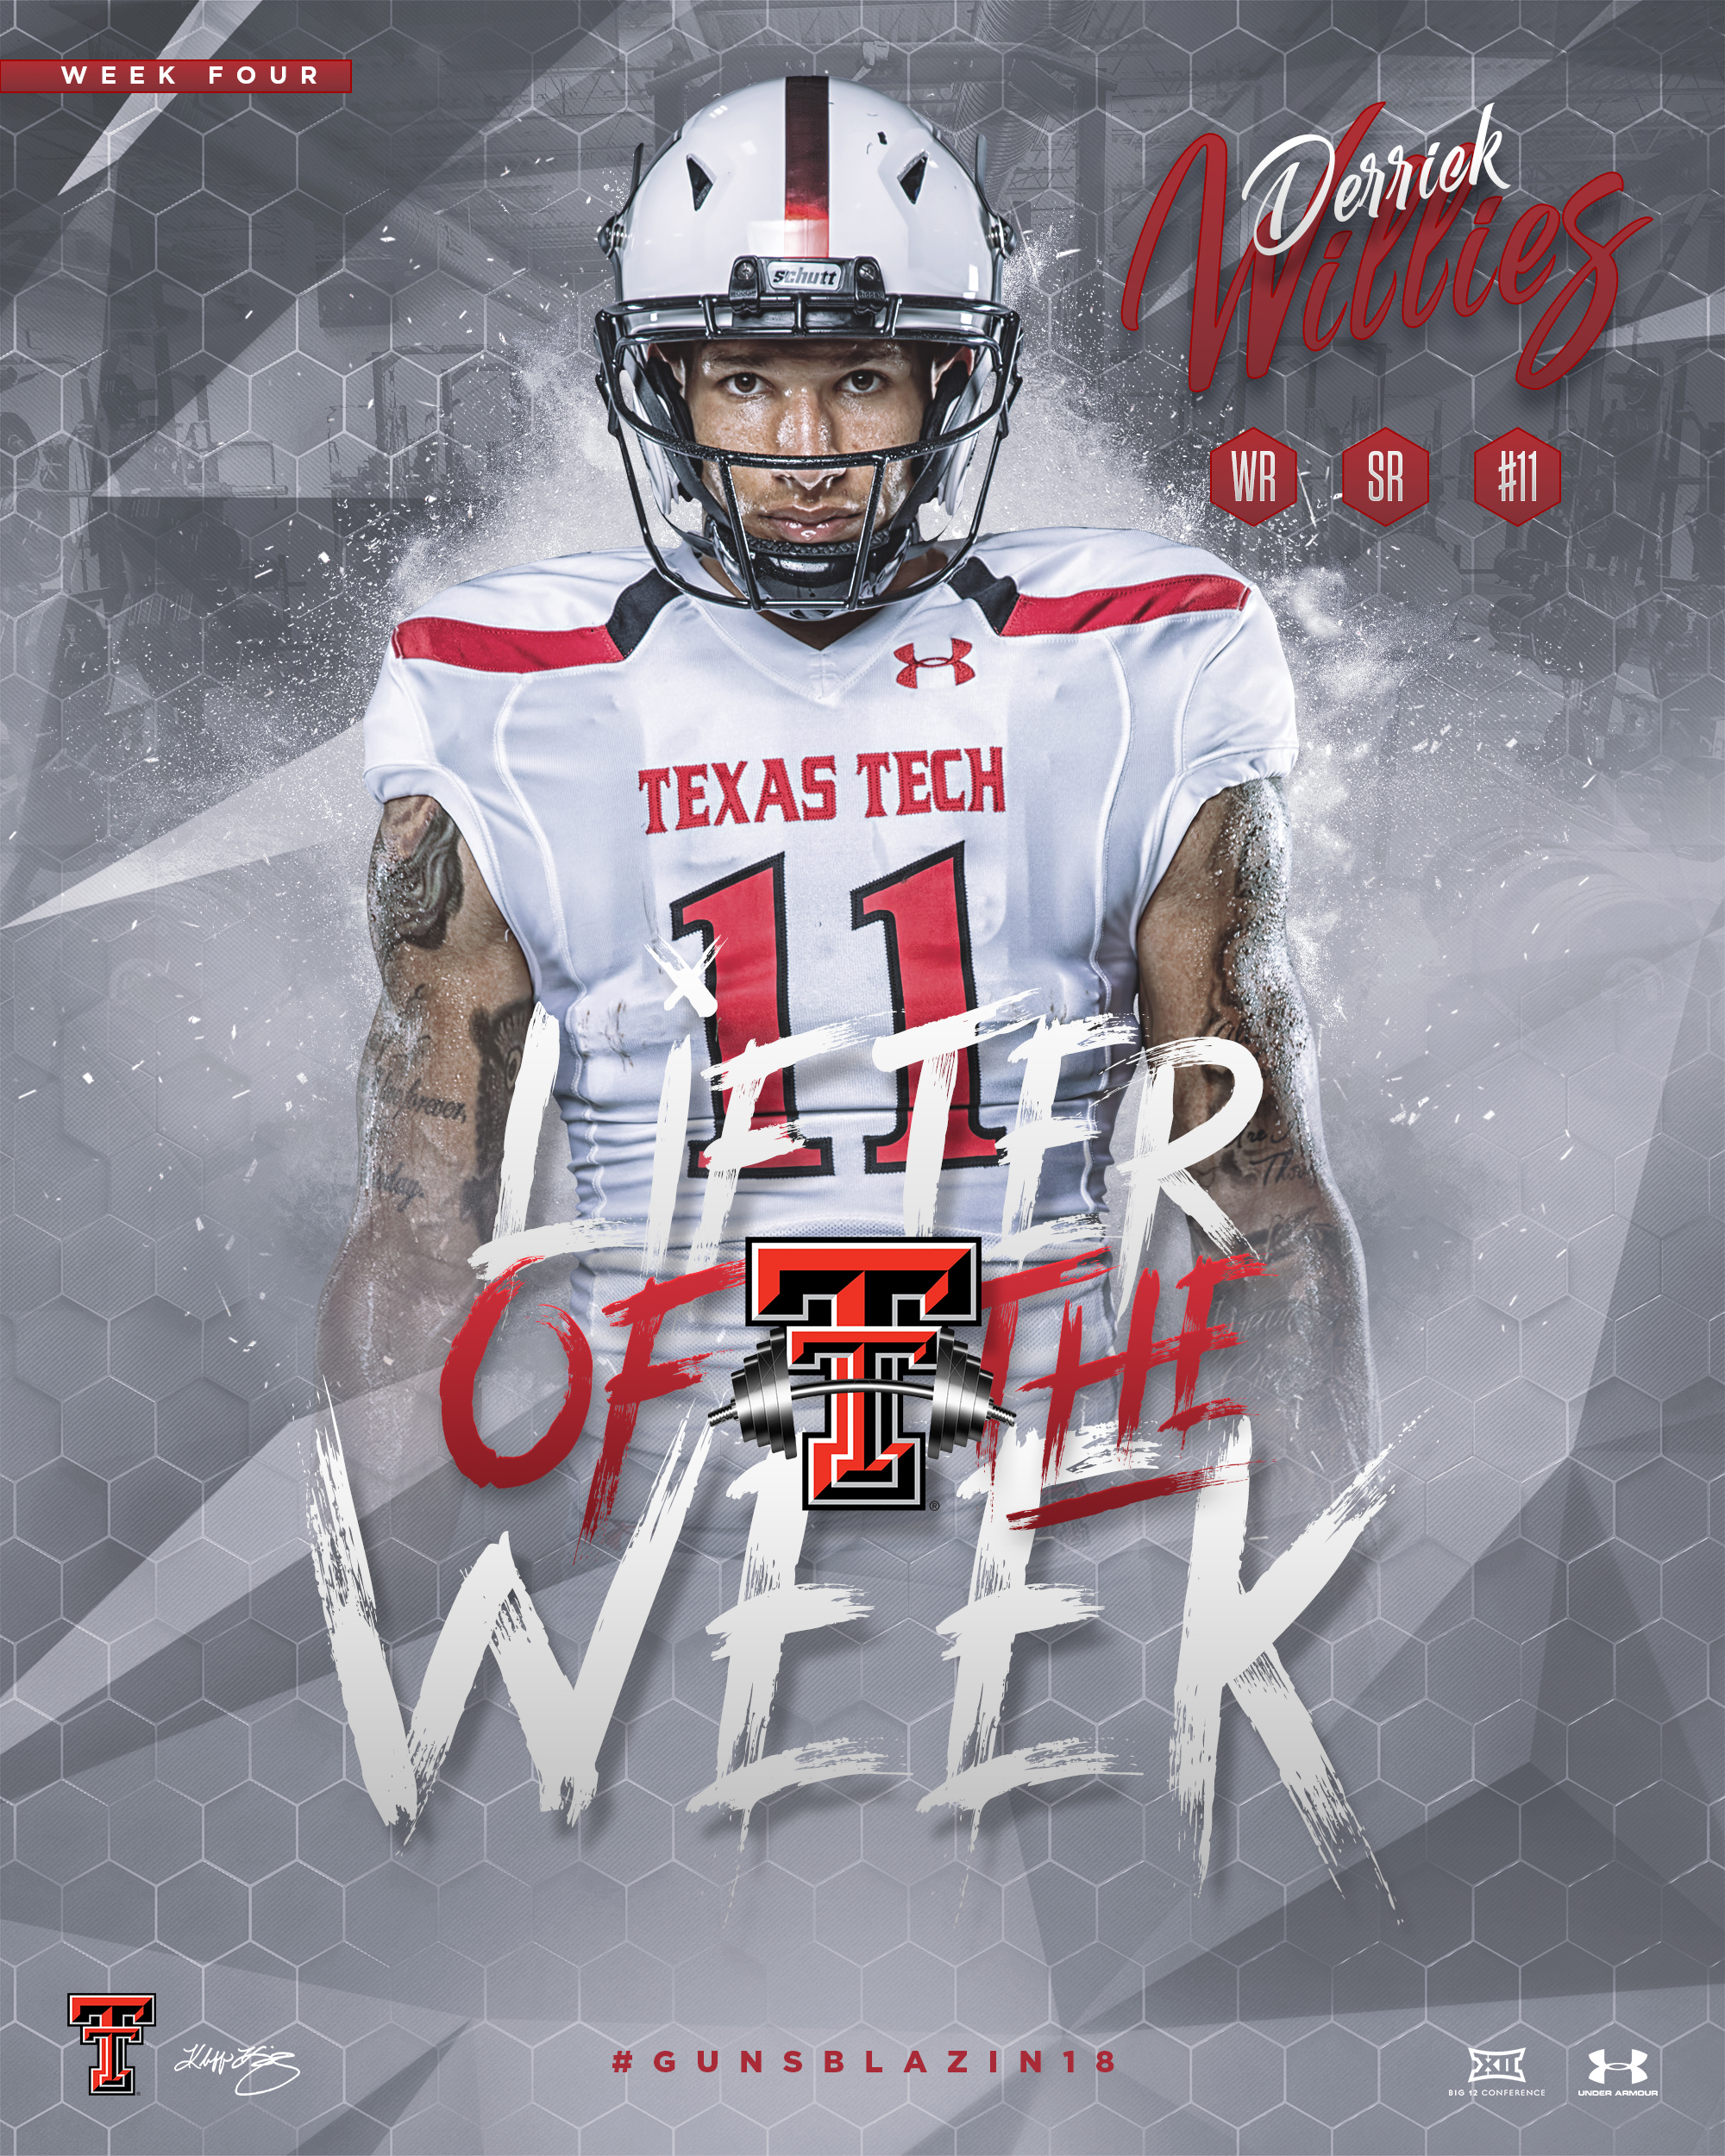 TTU Lifter of the Week Derrick Willies